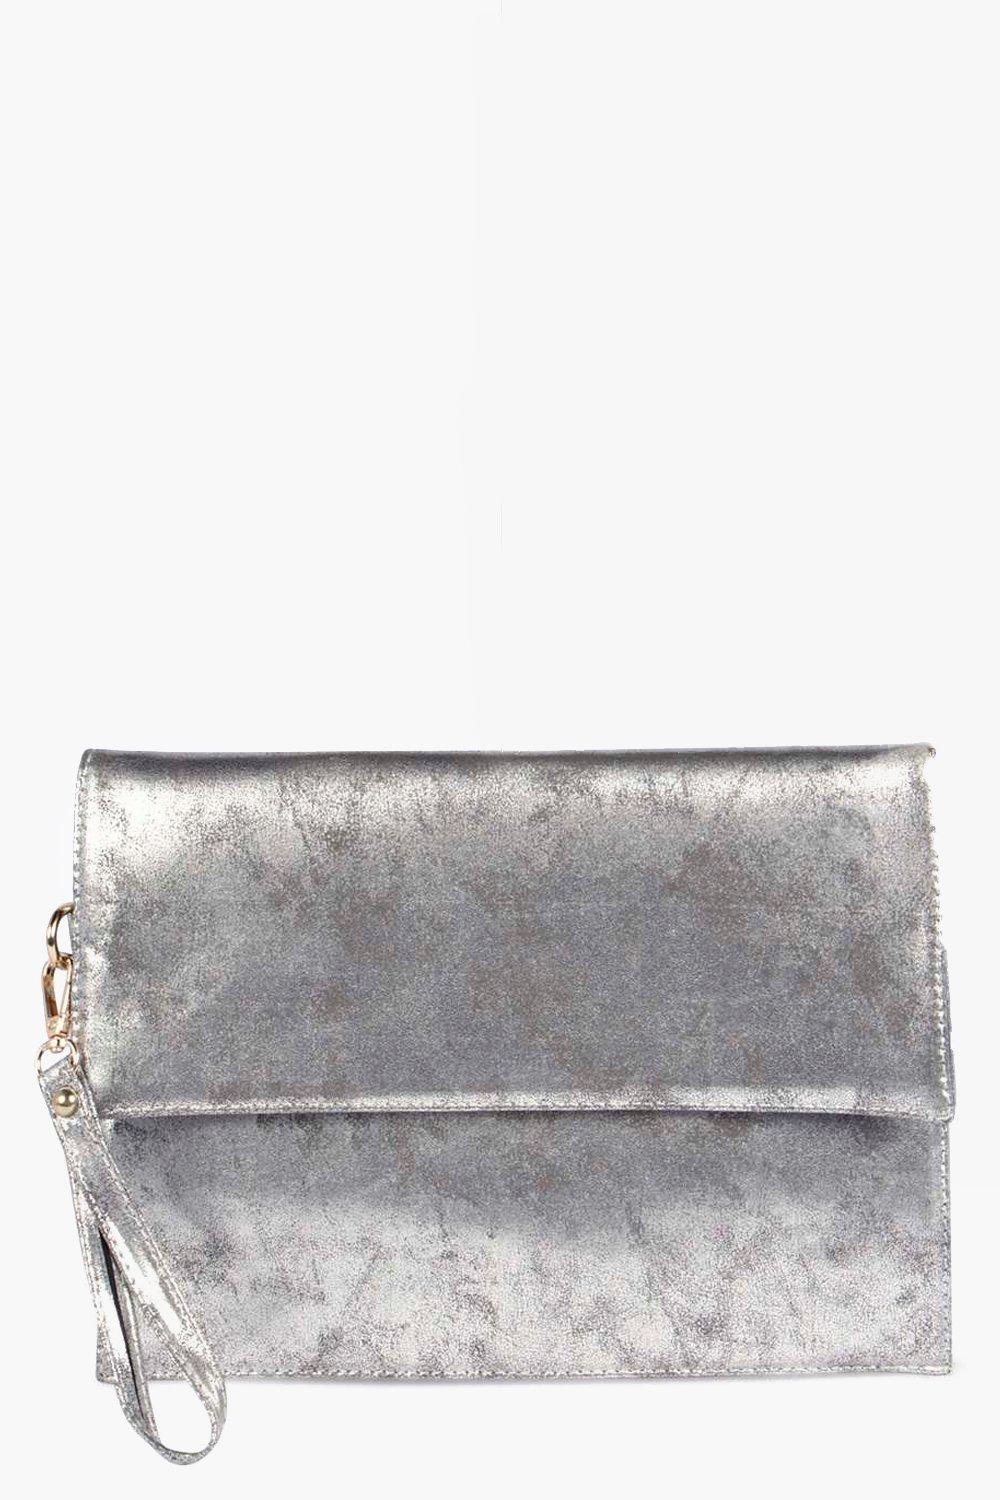 Oversized Clutch Bag silver